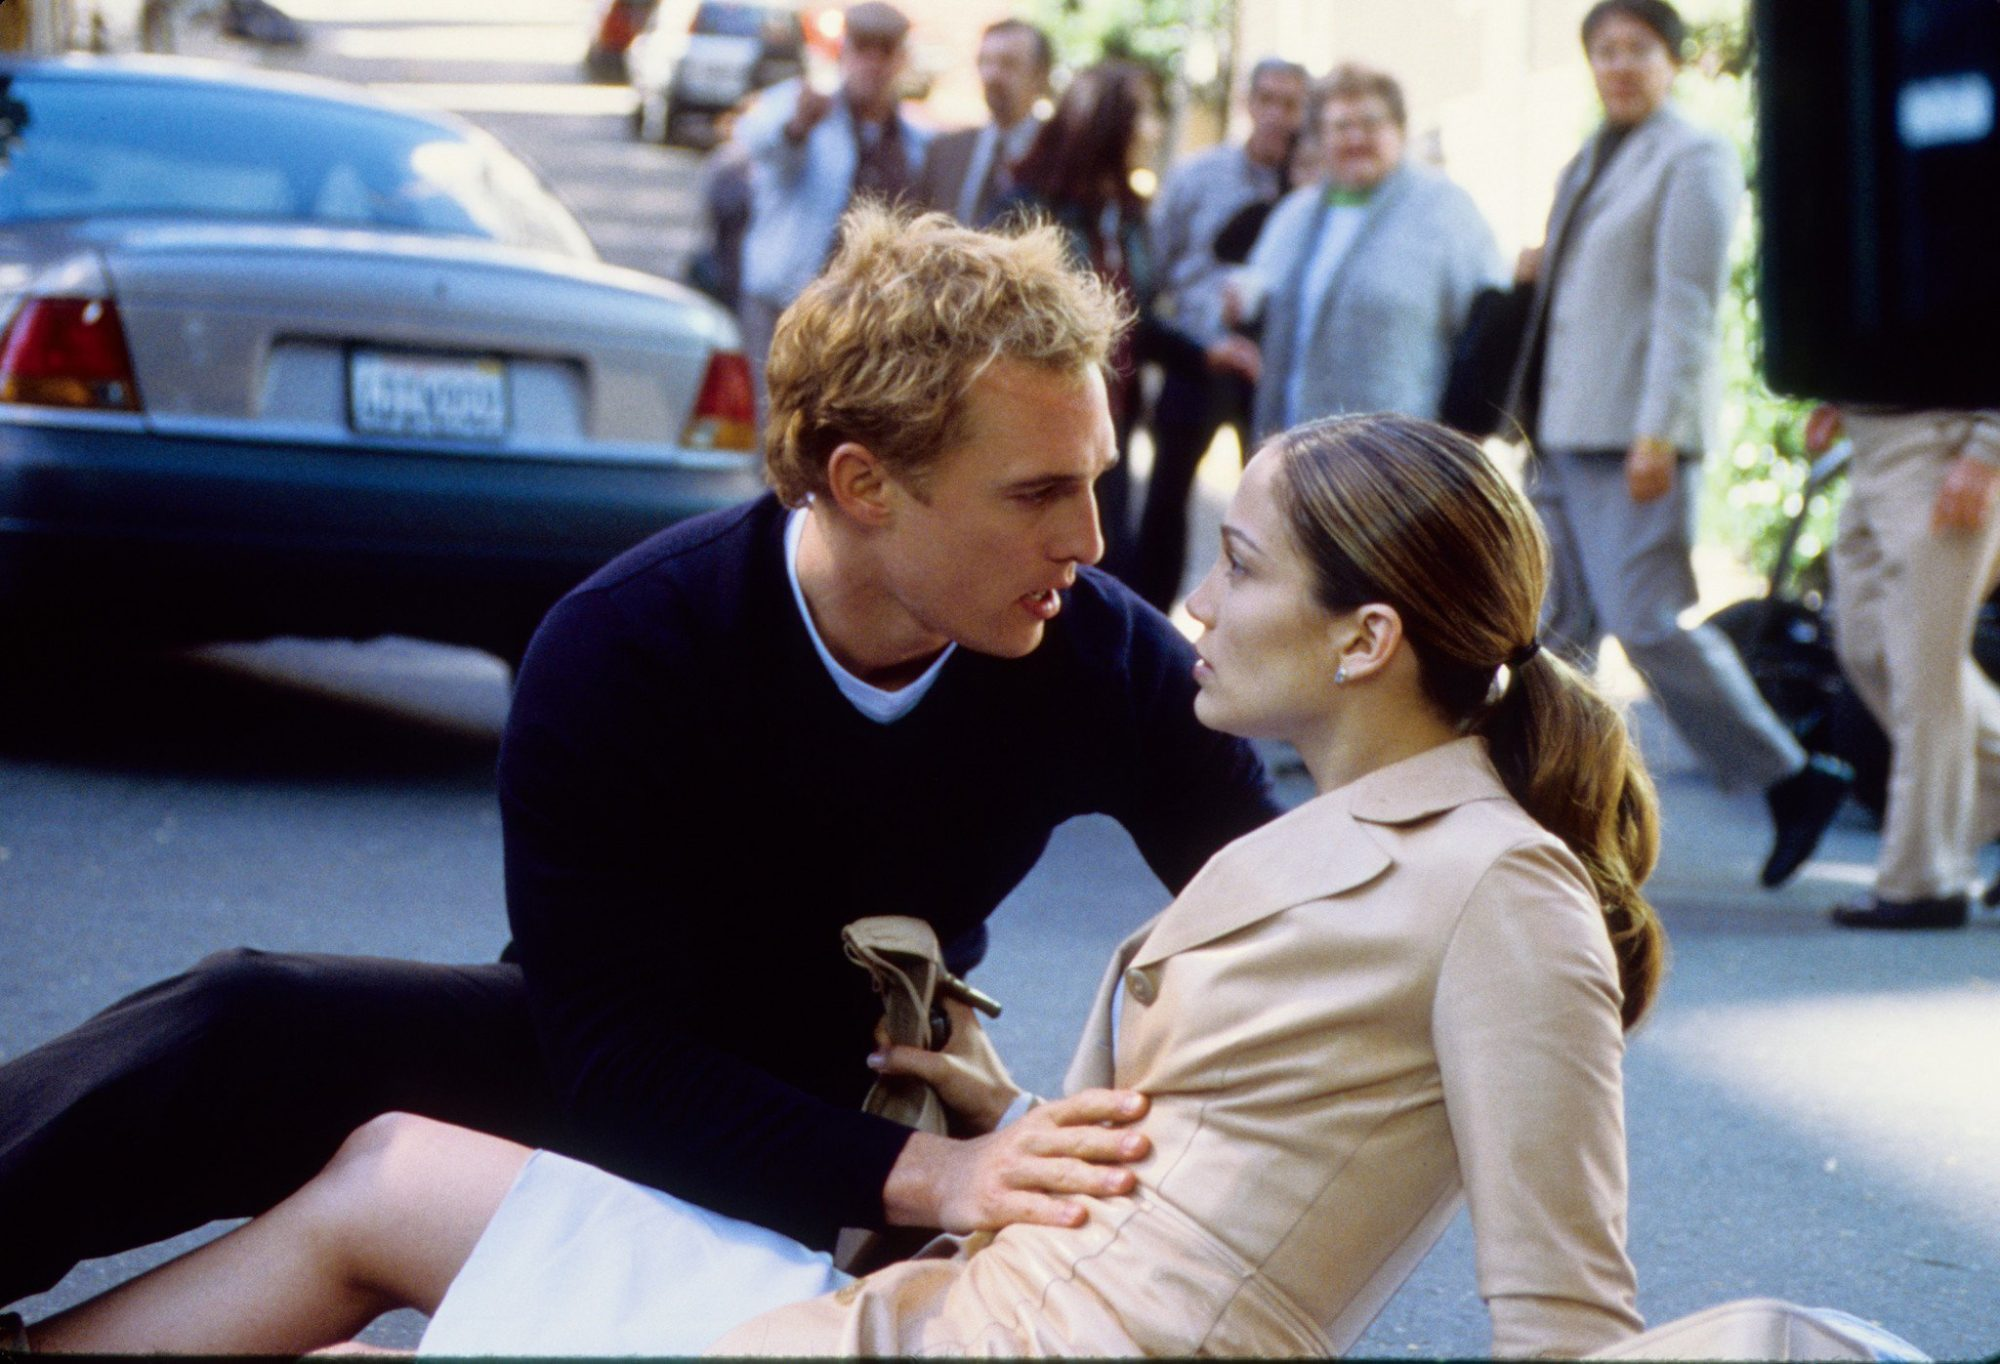 4. The Wedding Planner (2001)